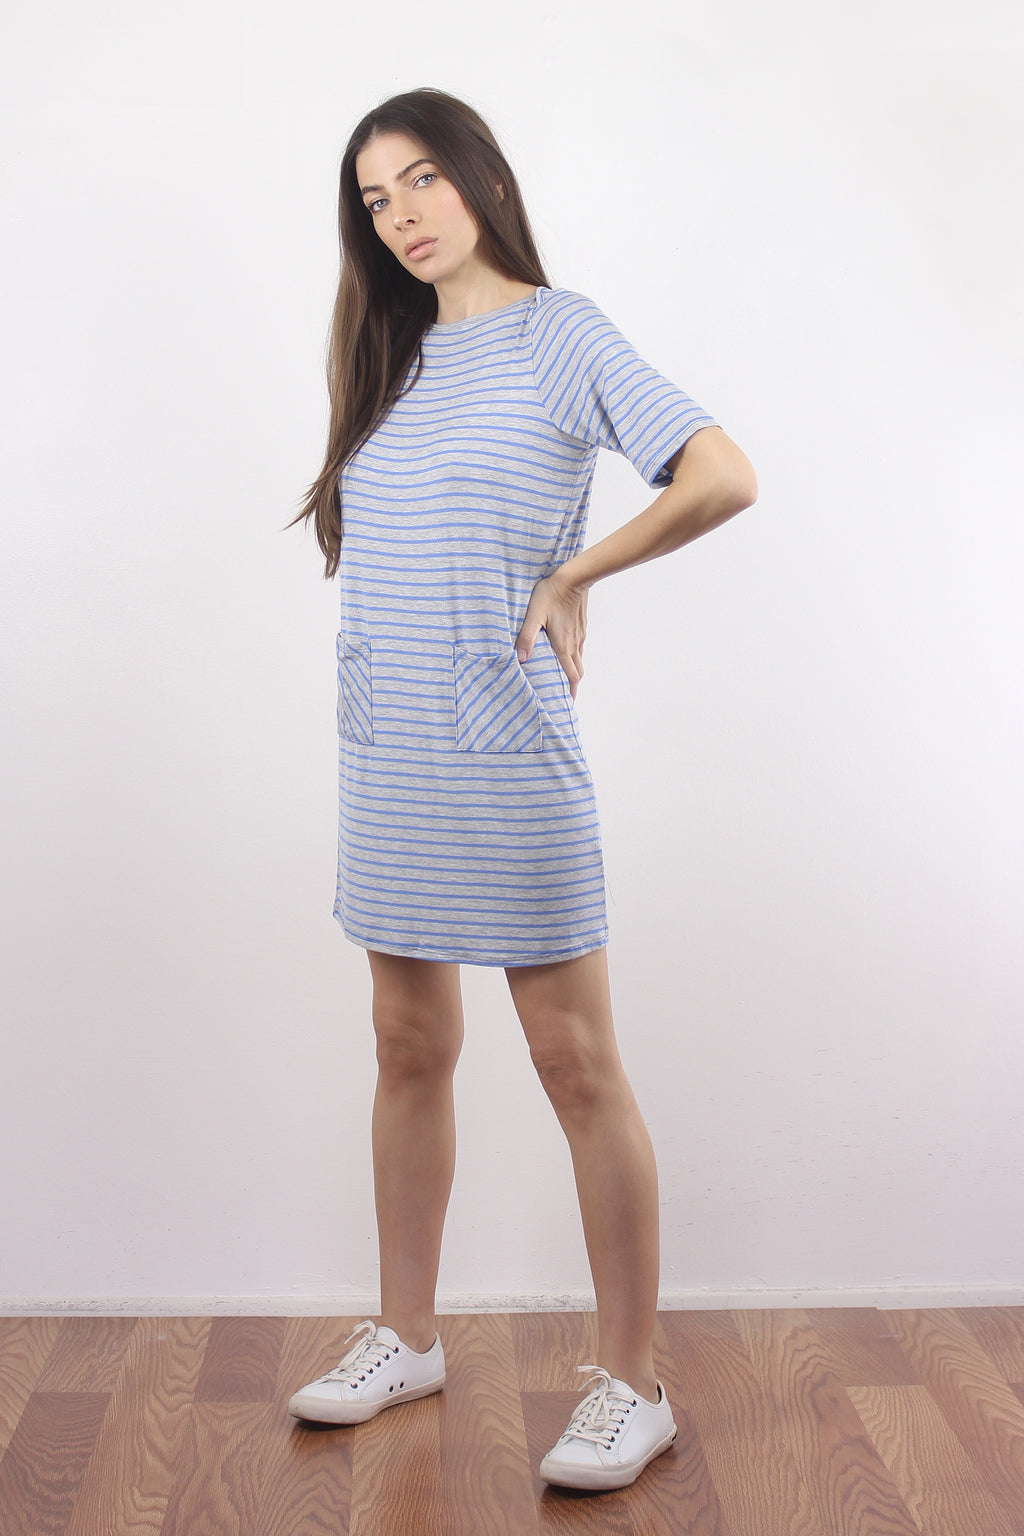 Light blue and grey striped tee shirt dress with front pockets.